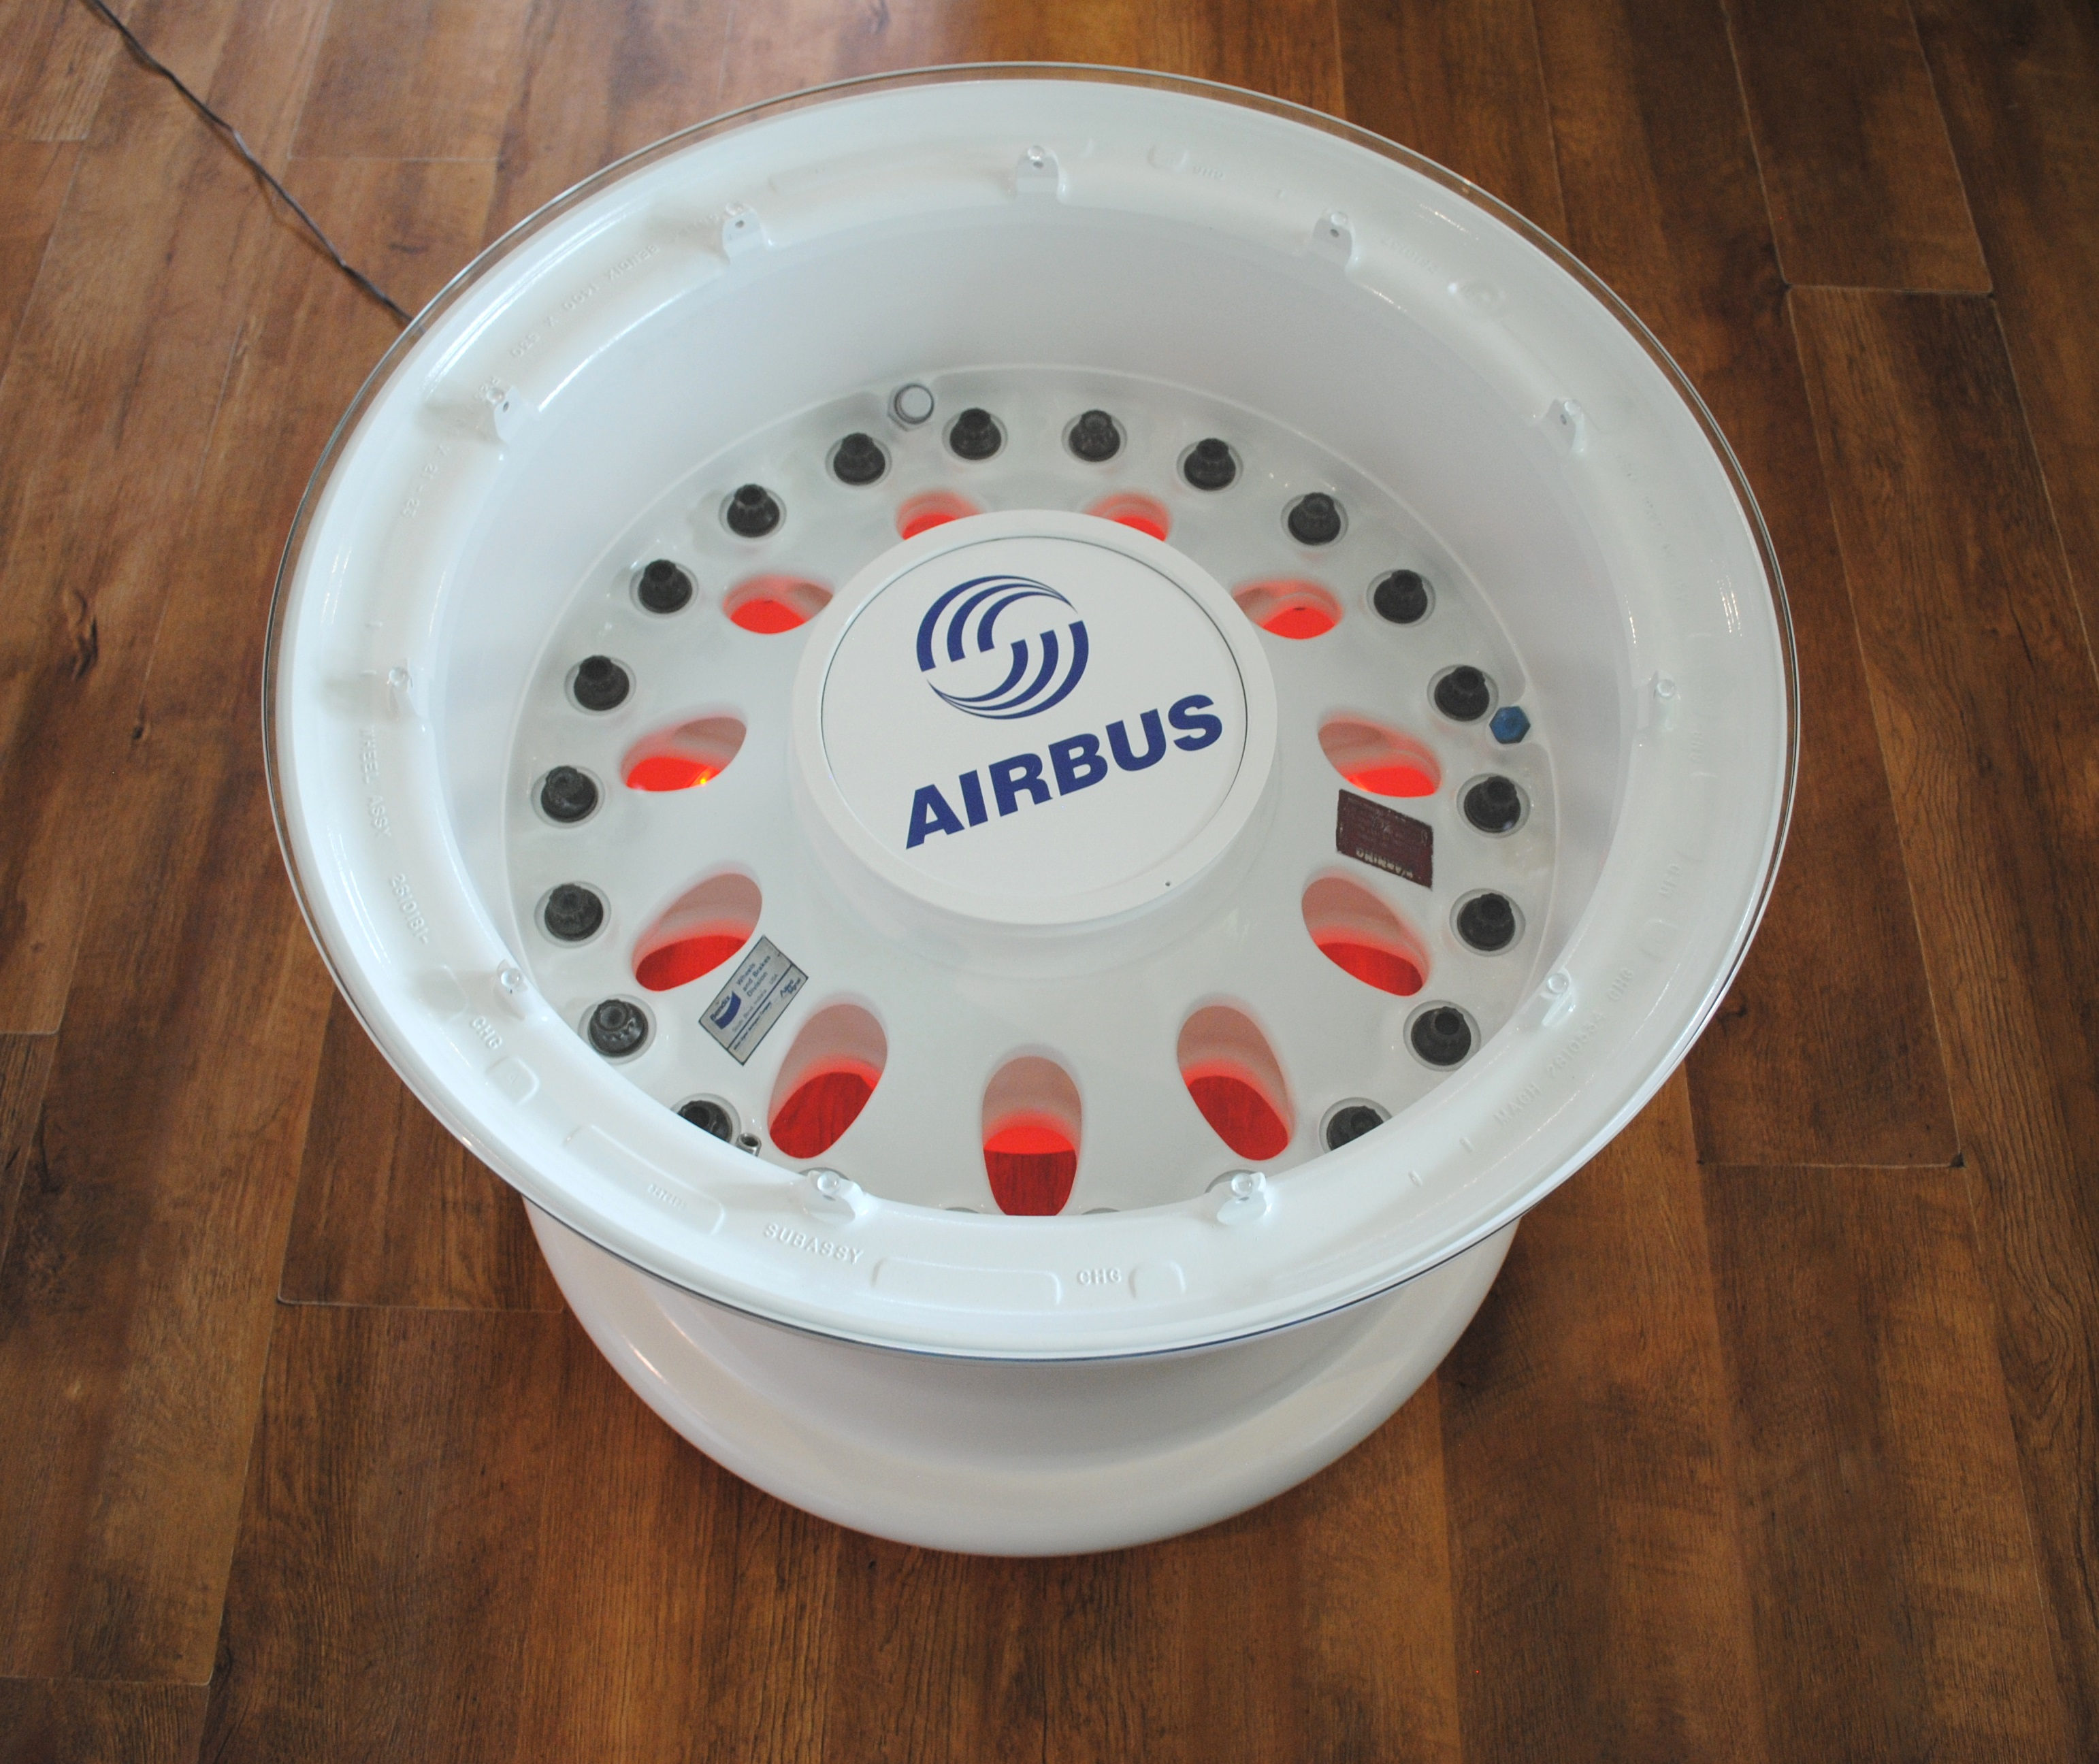 Airbus Wheel Coffee Table